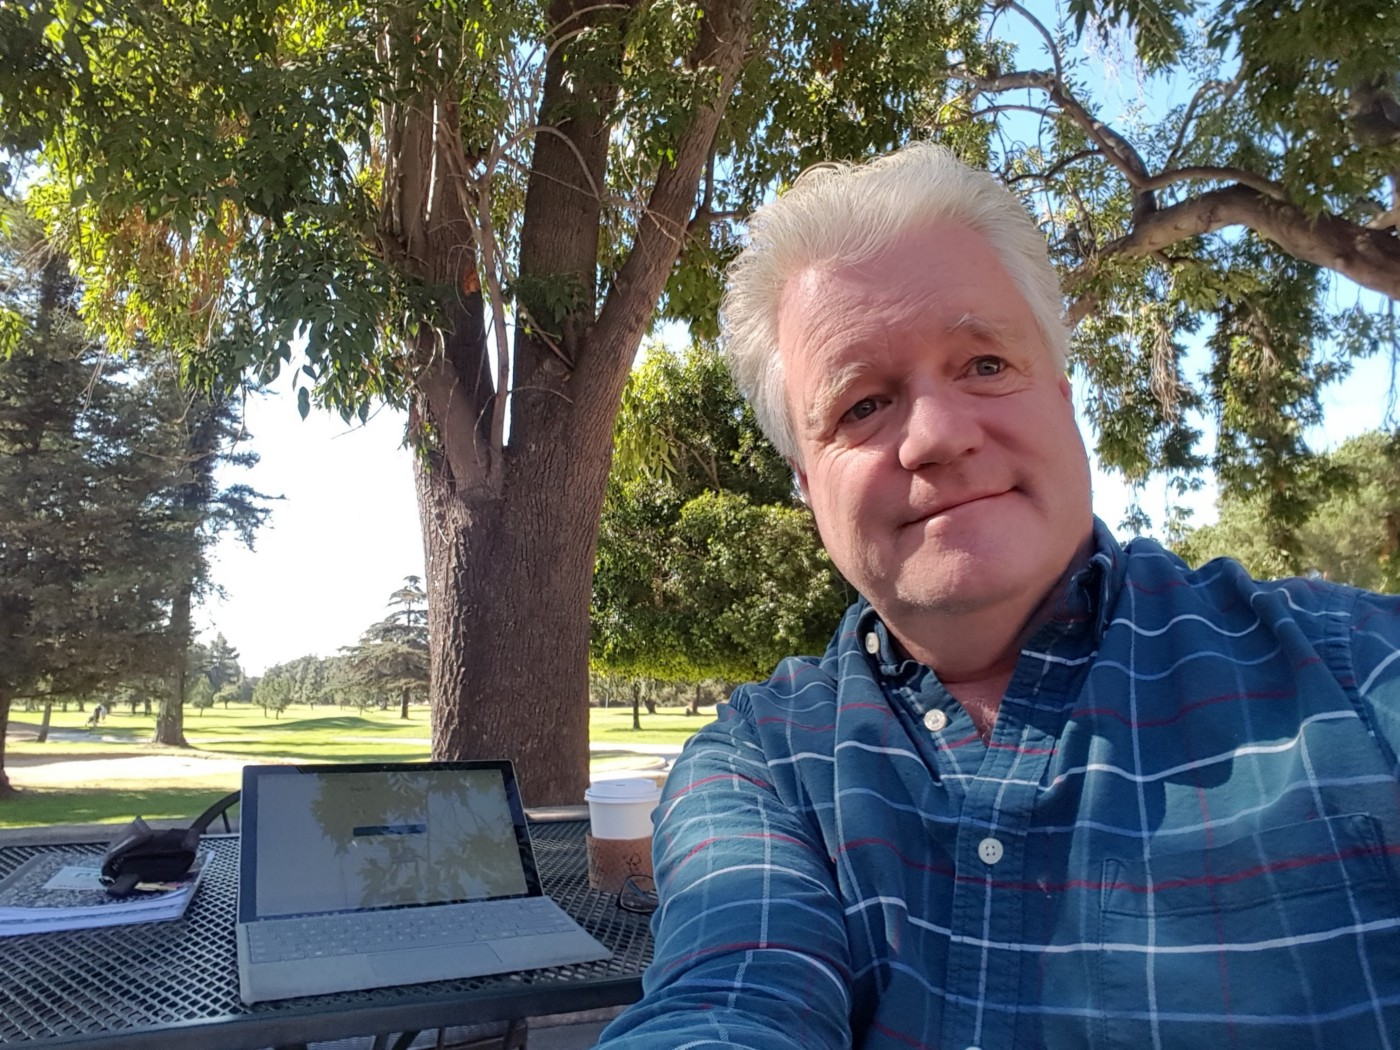 Don Simkovich sitting in front of laptop outdoors.